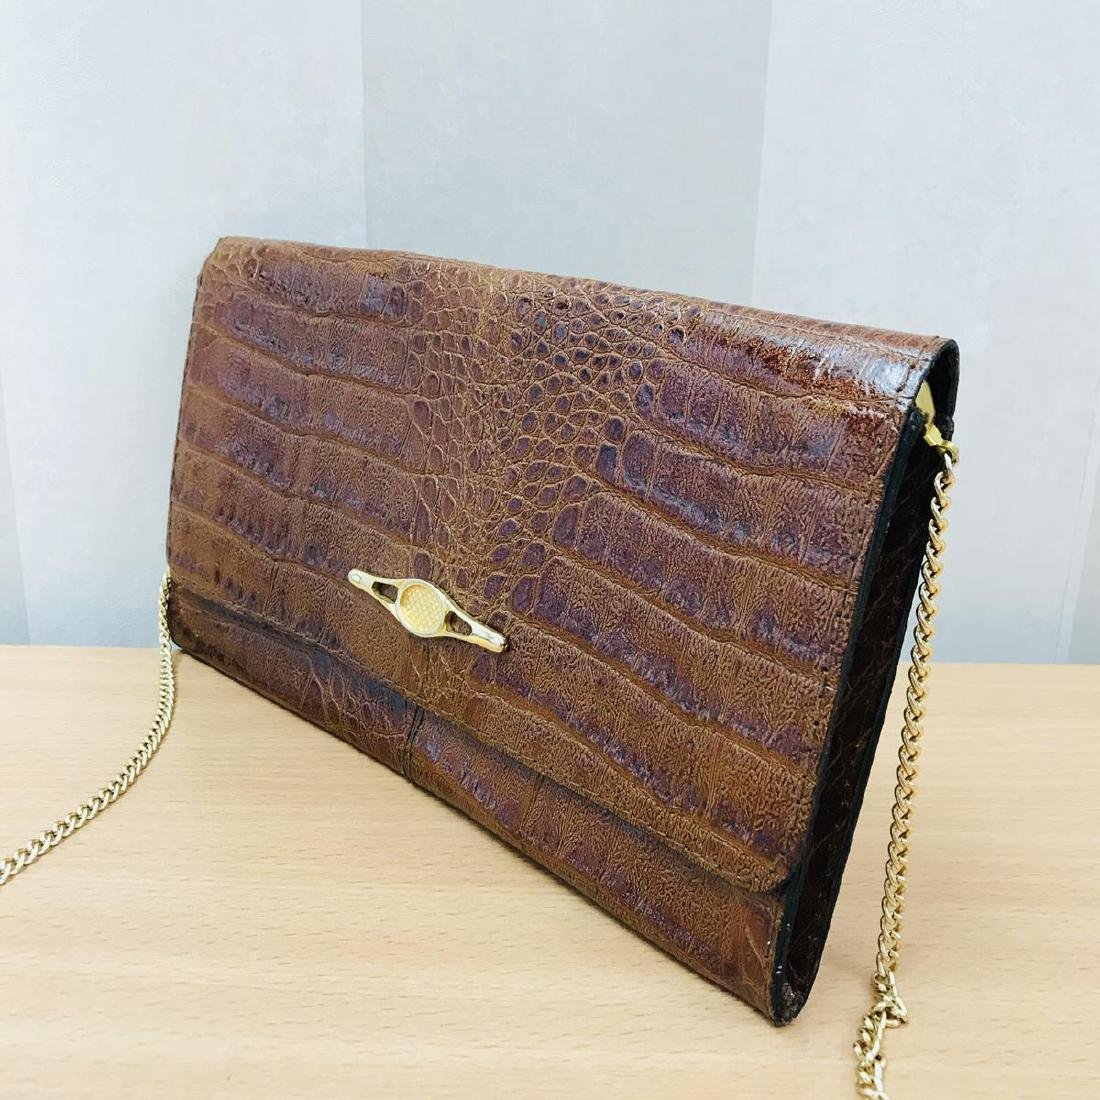 Vintage Crocodile Leather Clutch Bag - 5